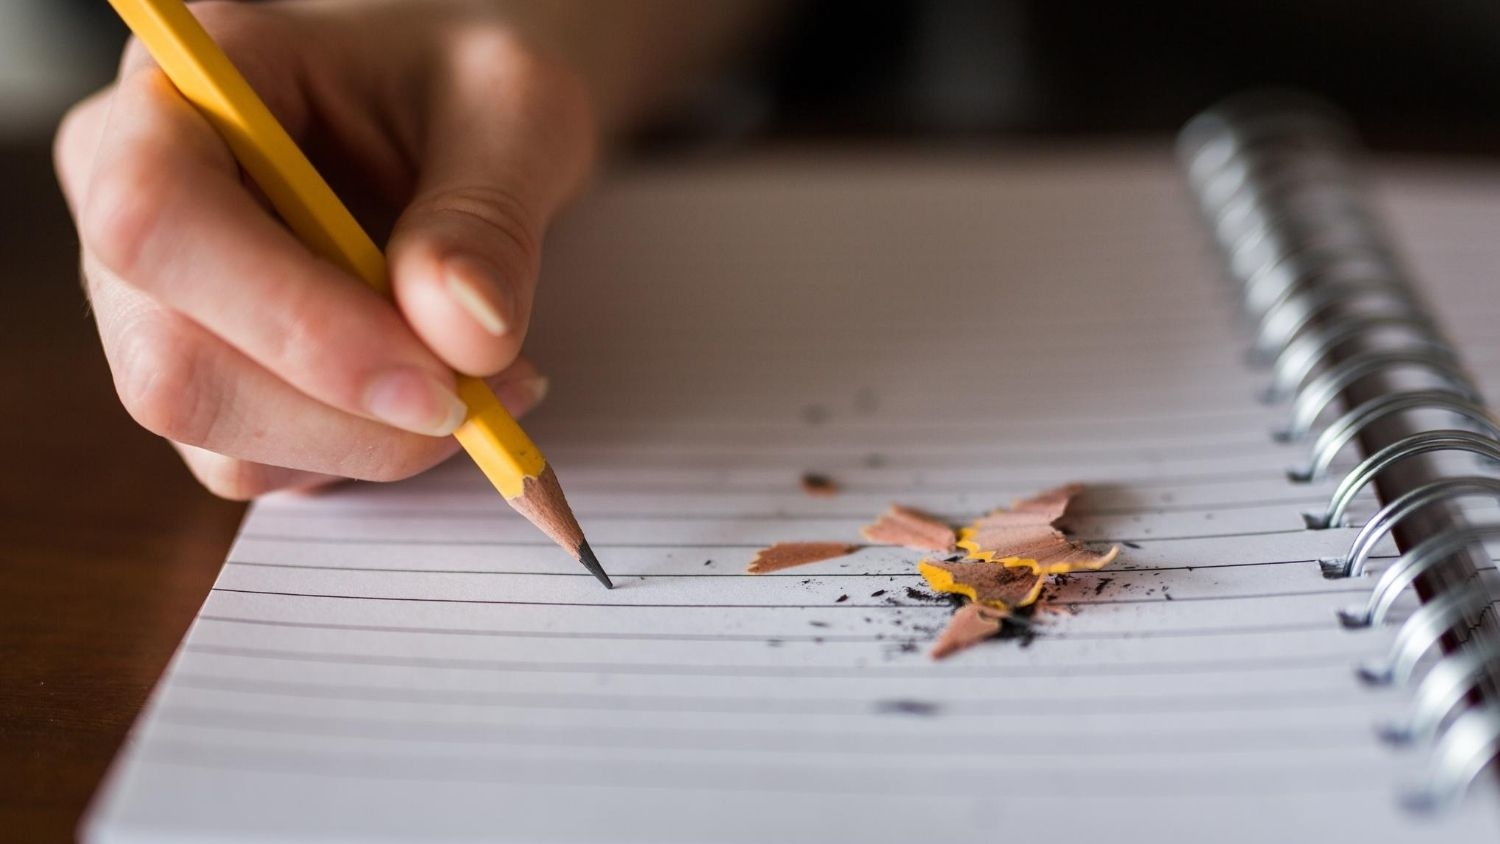 Writing with a pencil.